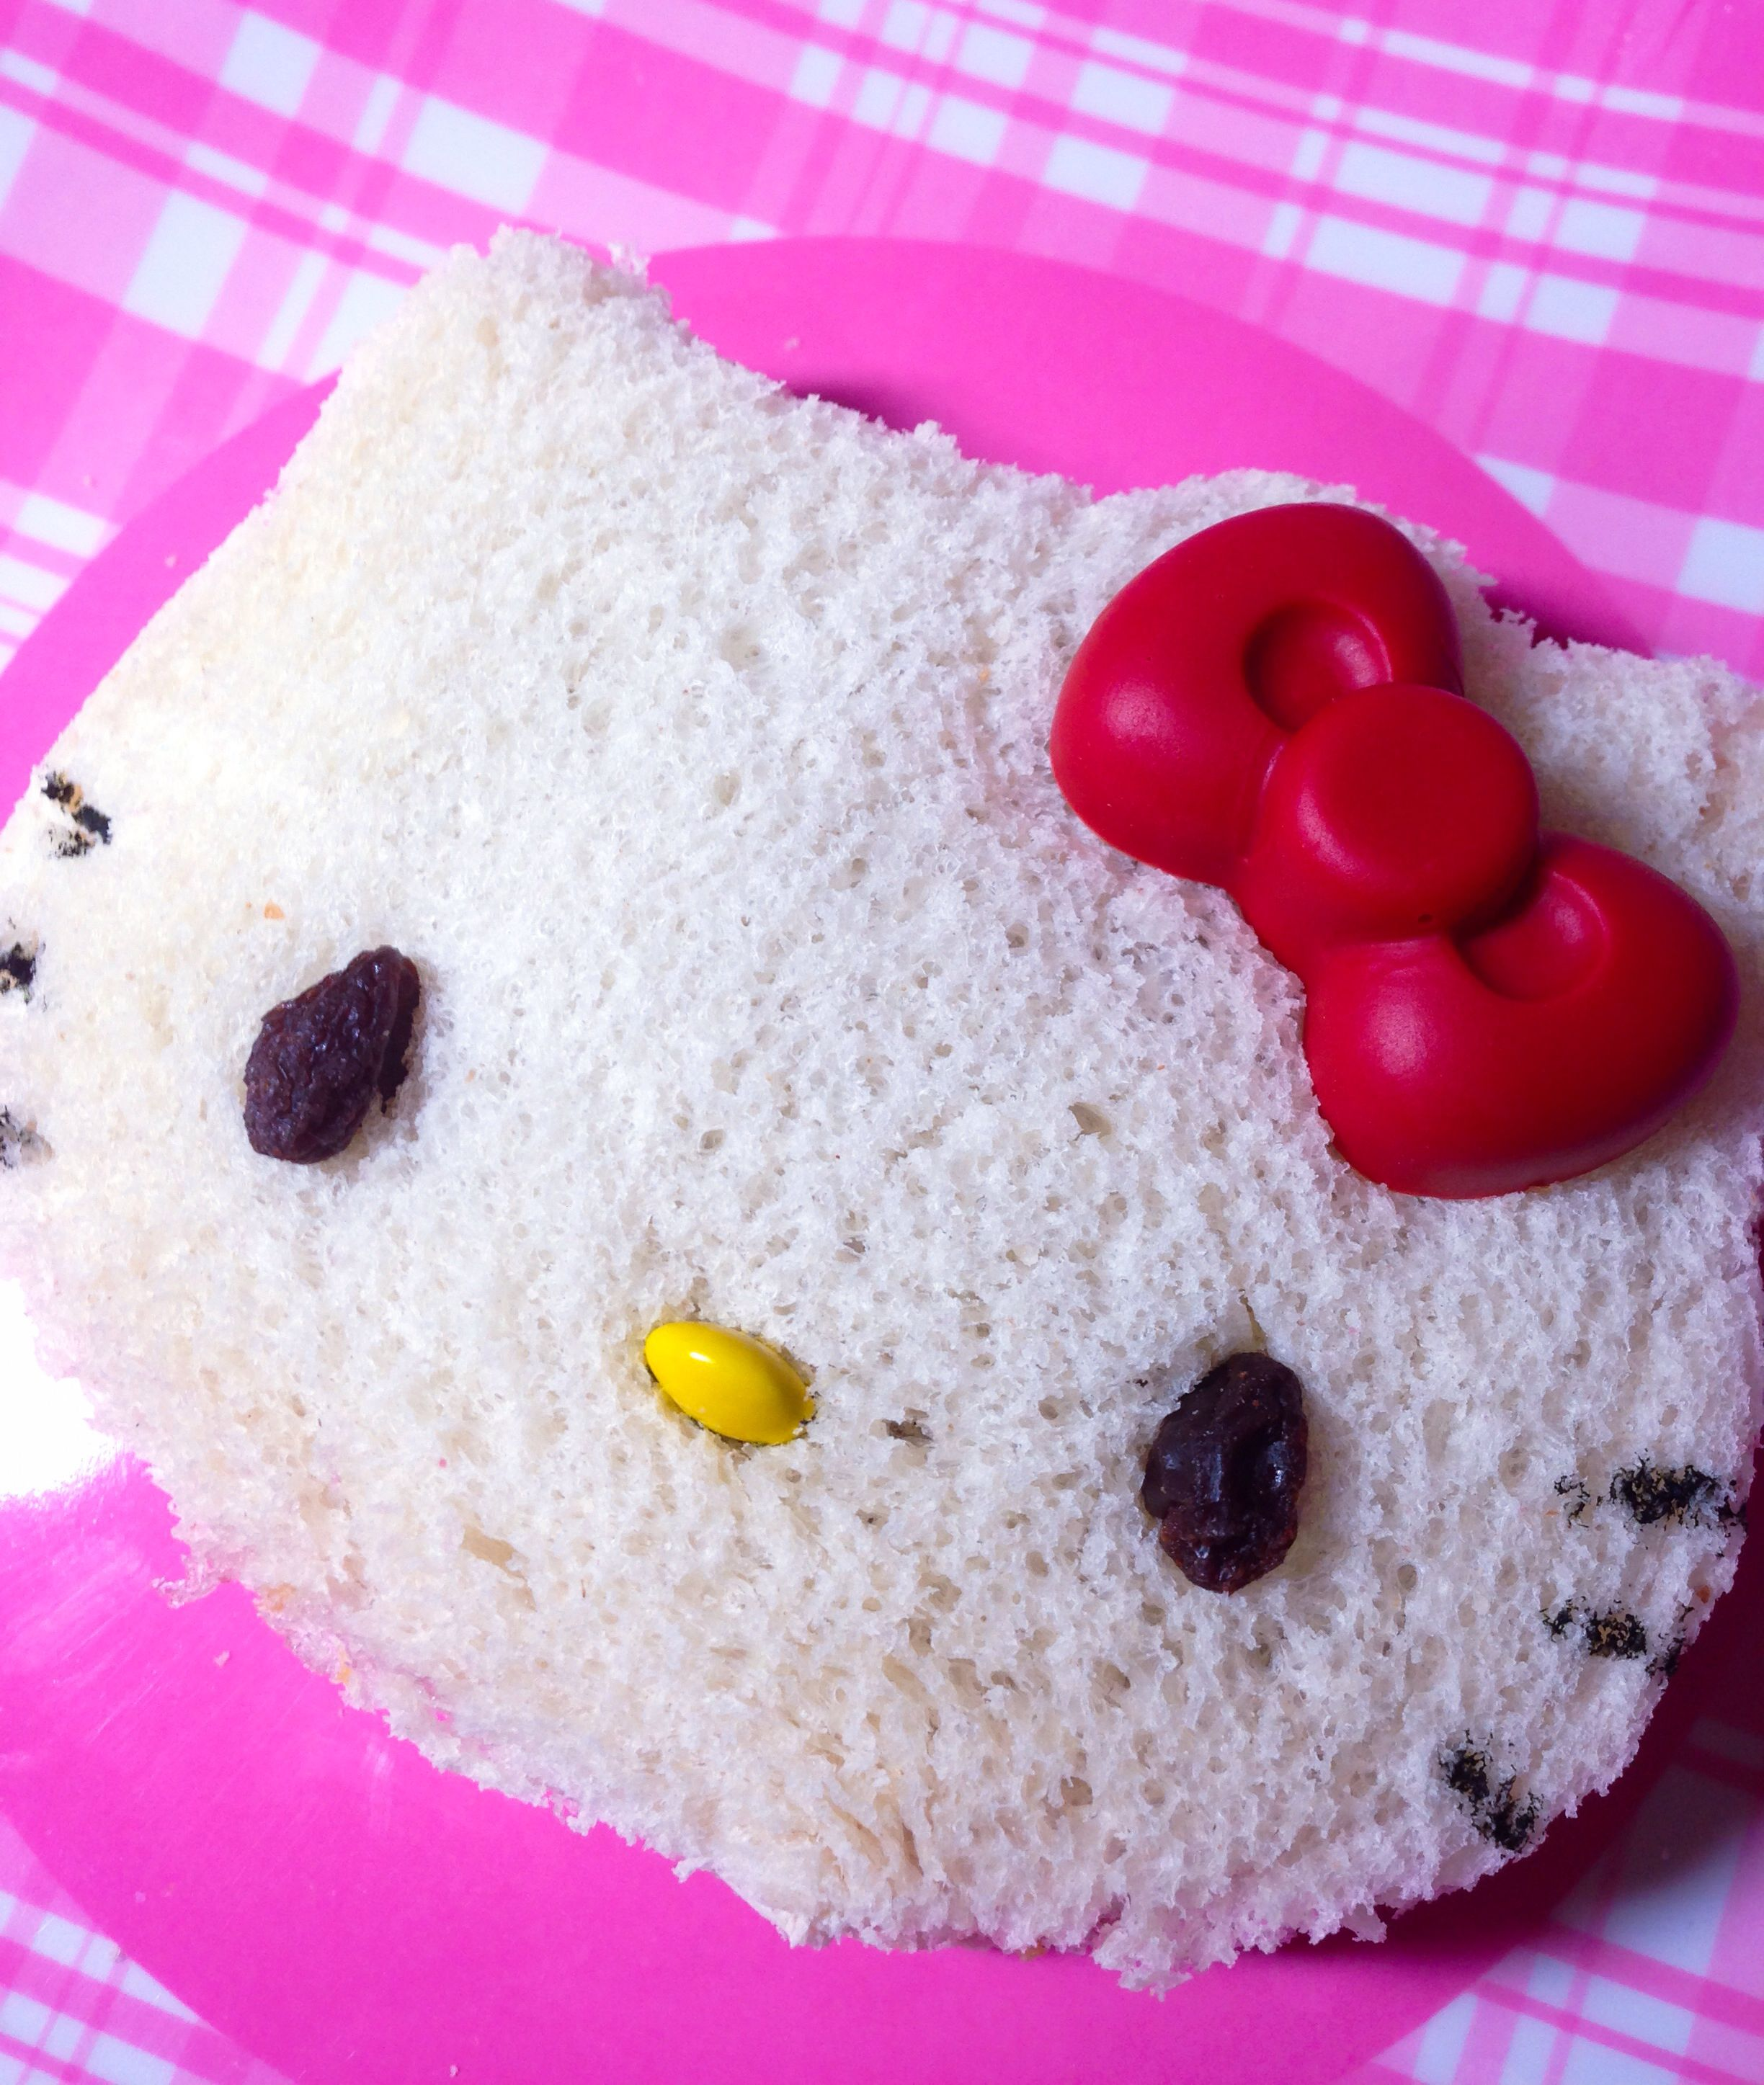 Made this Hello Kitty Sandwich :)